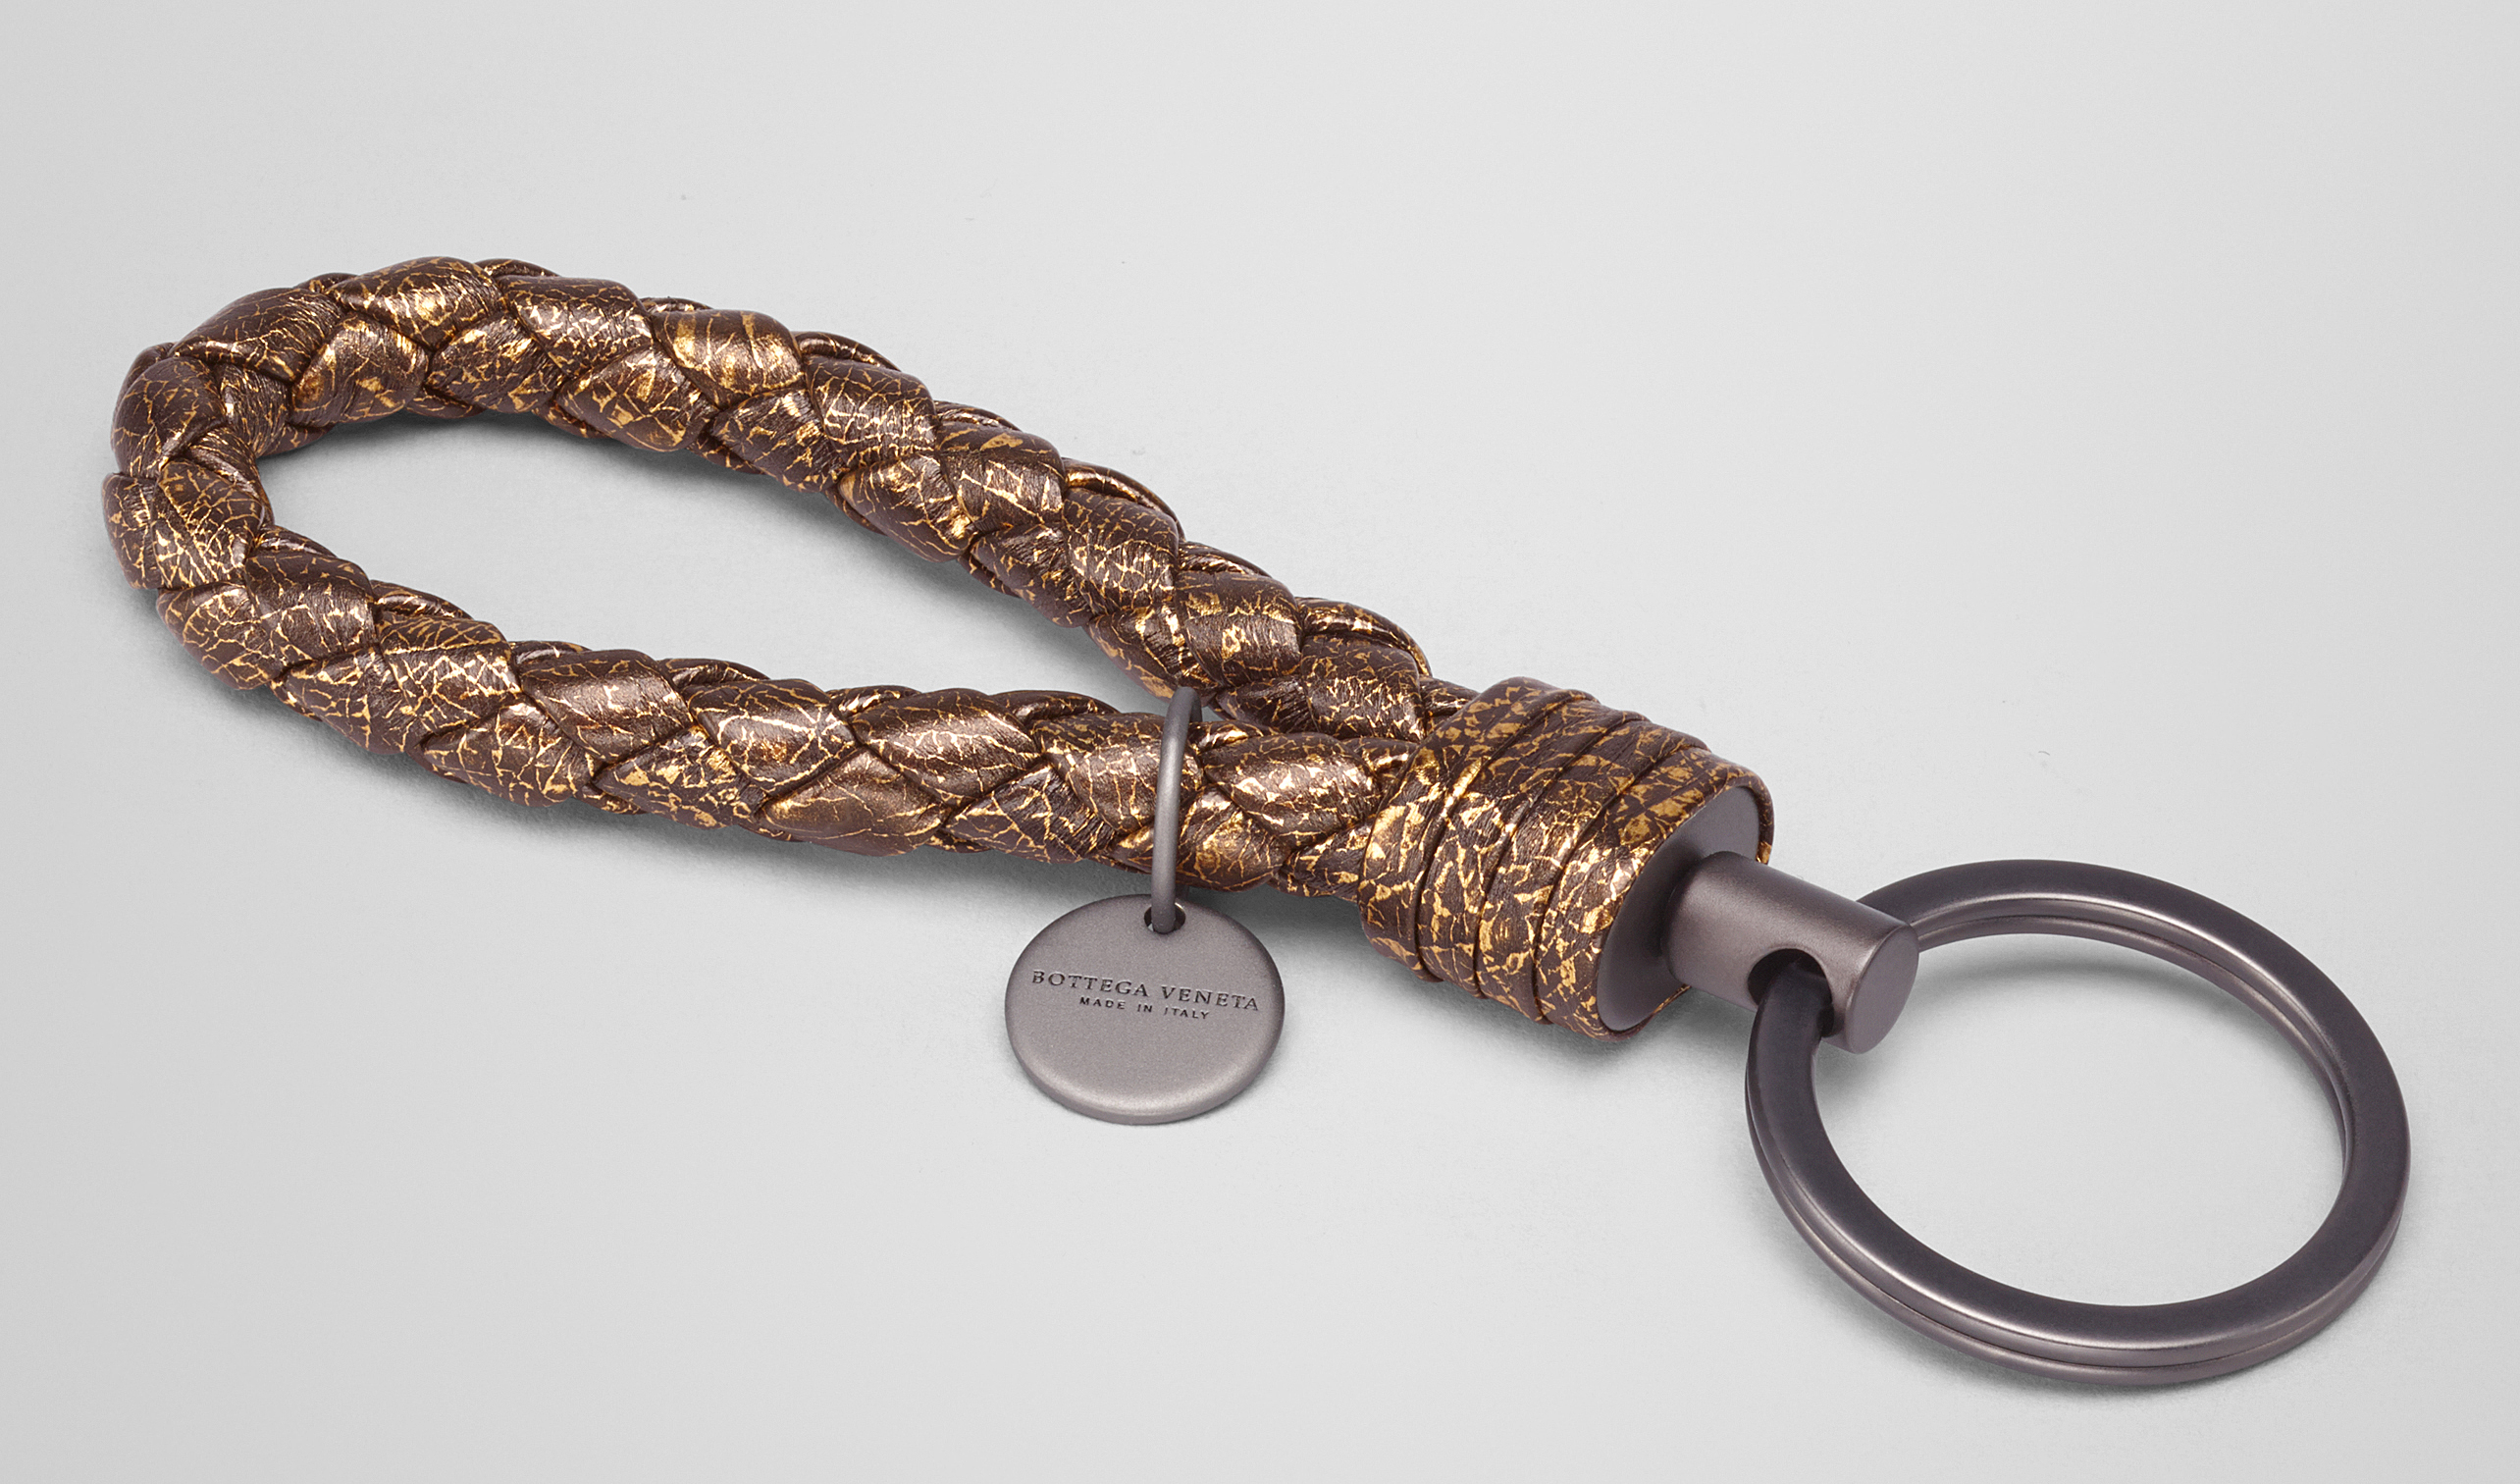 Bottega Veneta Oro Scuro Calf Key Ring Oro scuro 5xihBBT